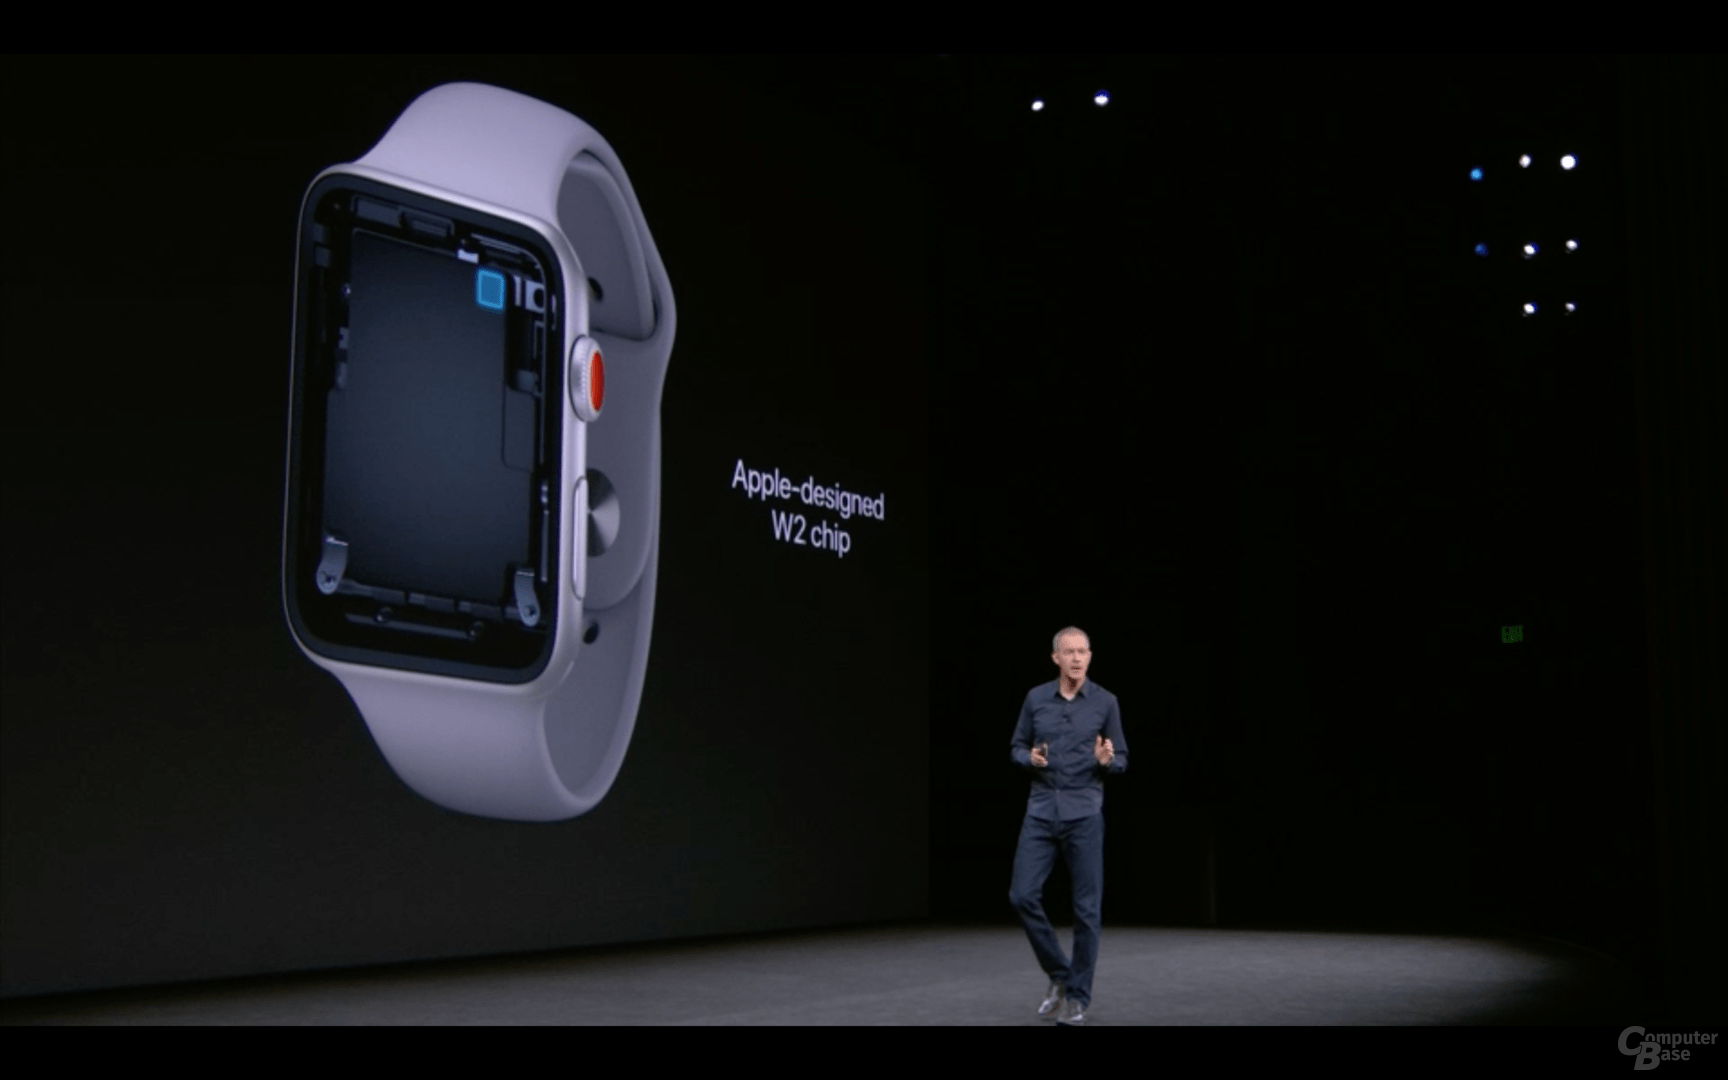 Apple Watch Series 3 mit LTE/UMTS-Modem im Apple W2